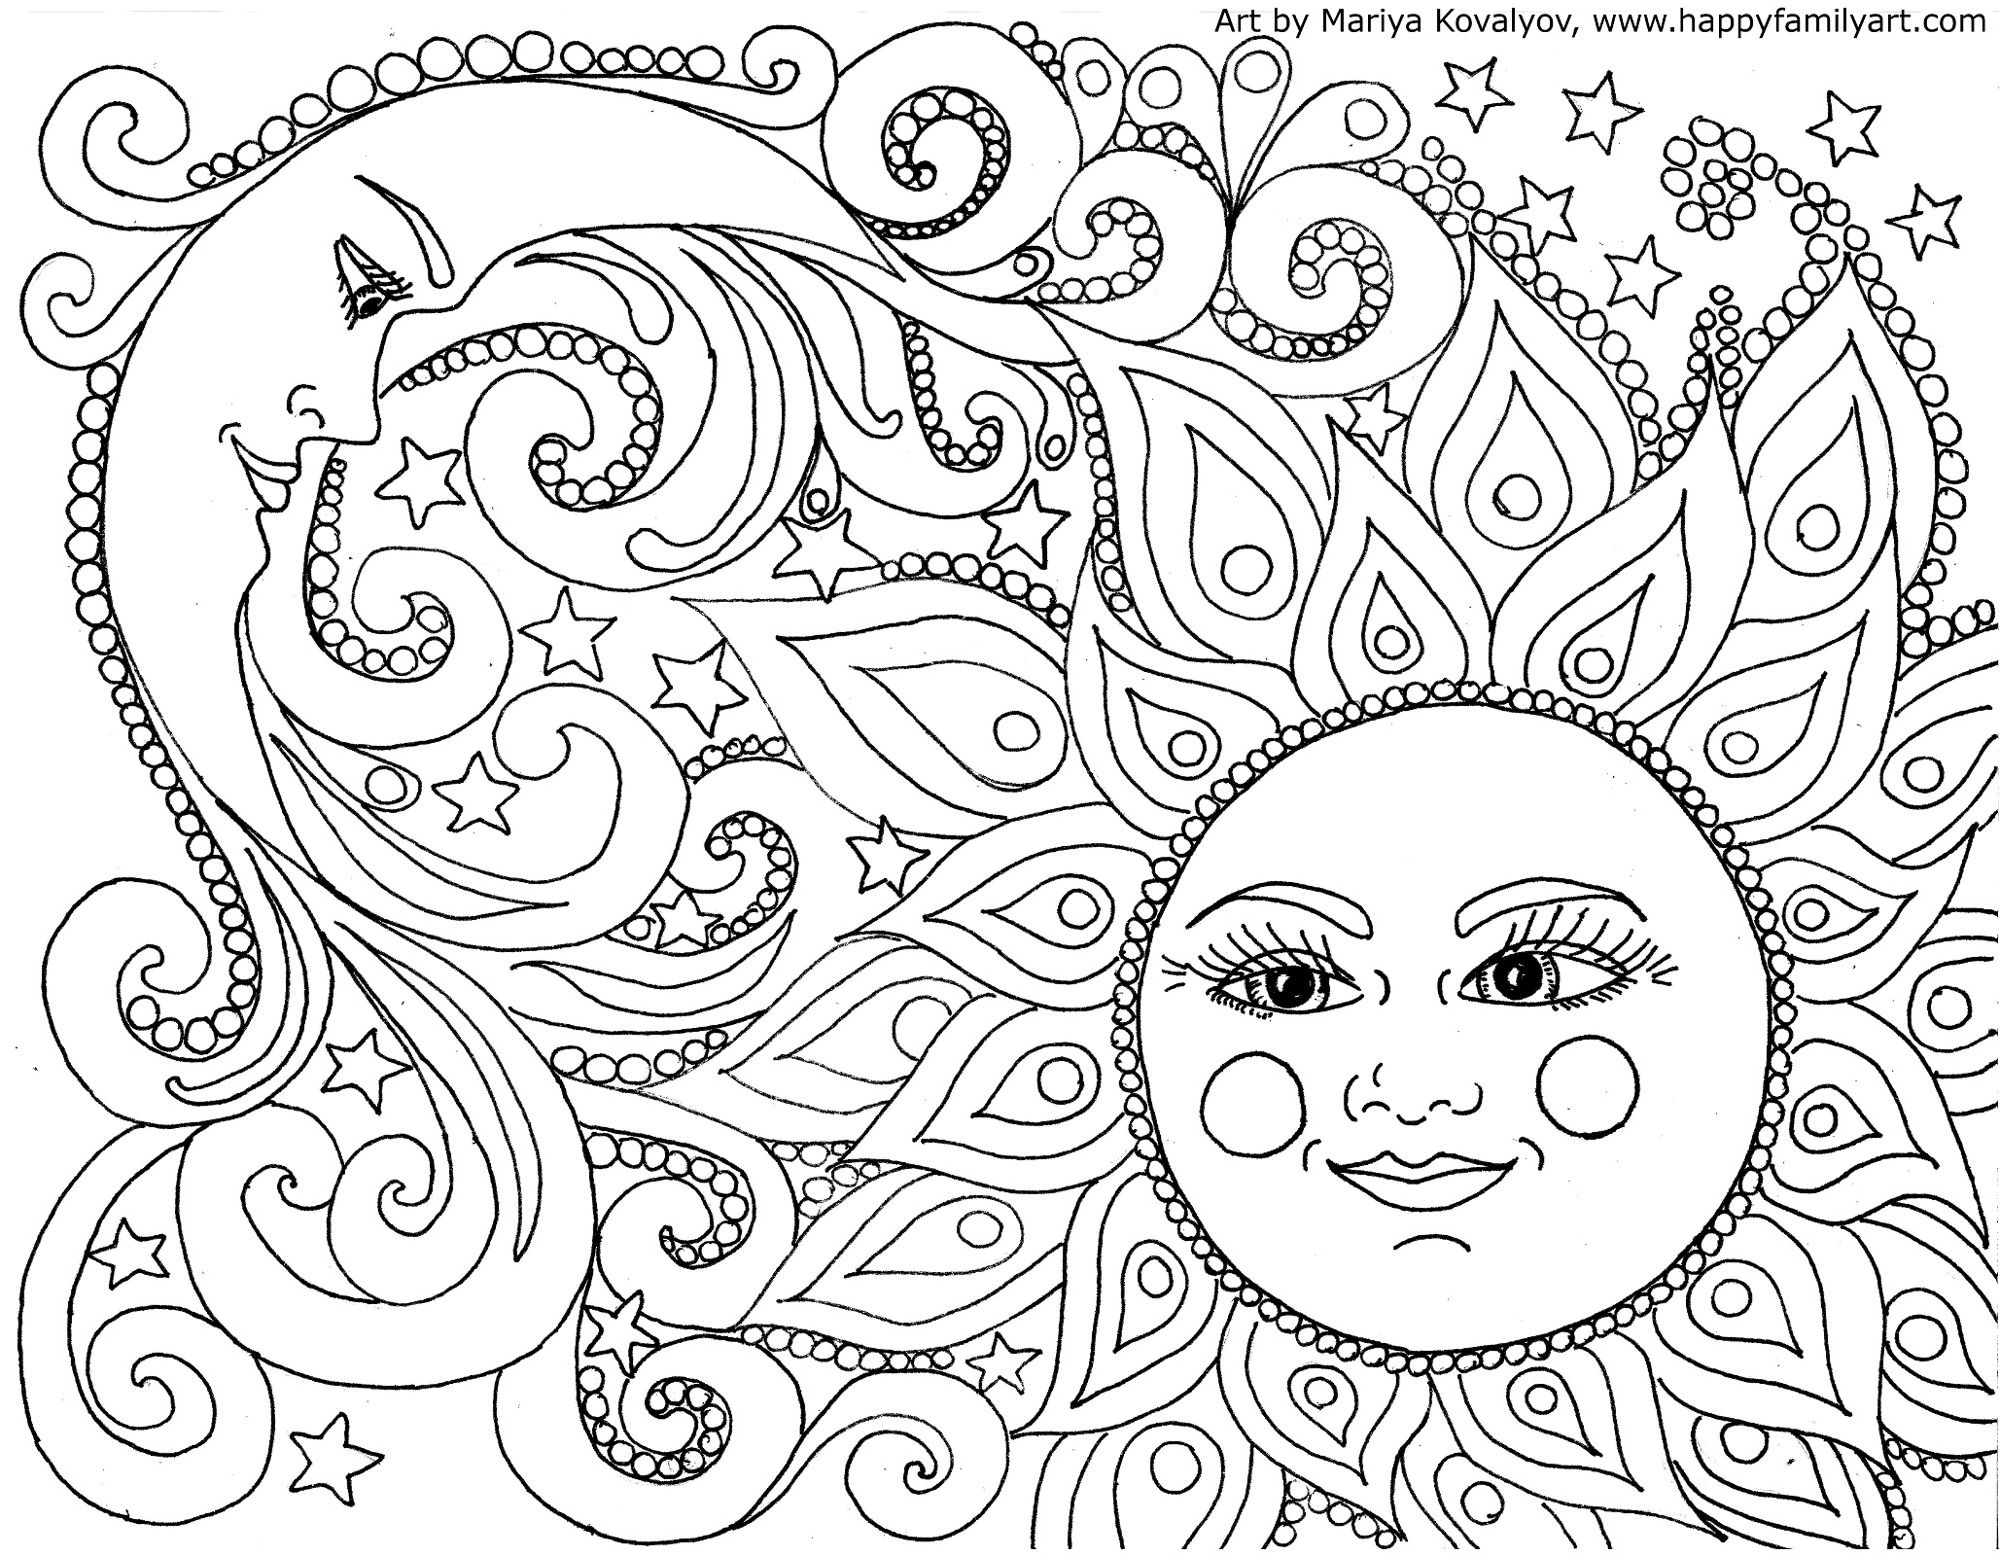 Free coloring pages to print and color - I Made Many Great Fun And Original Coloring Pages Color Your Heart Out